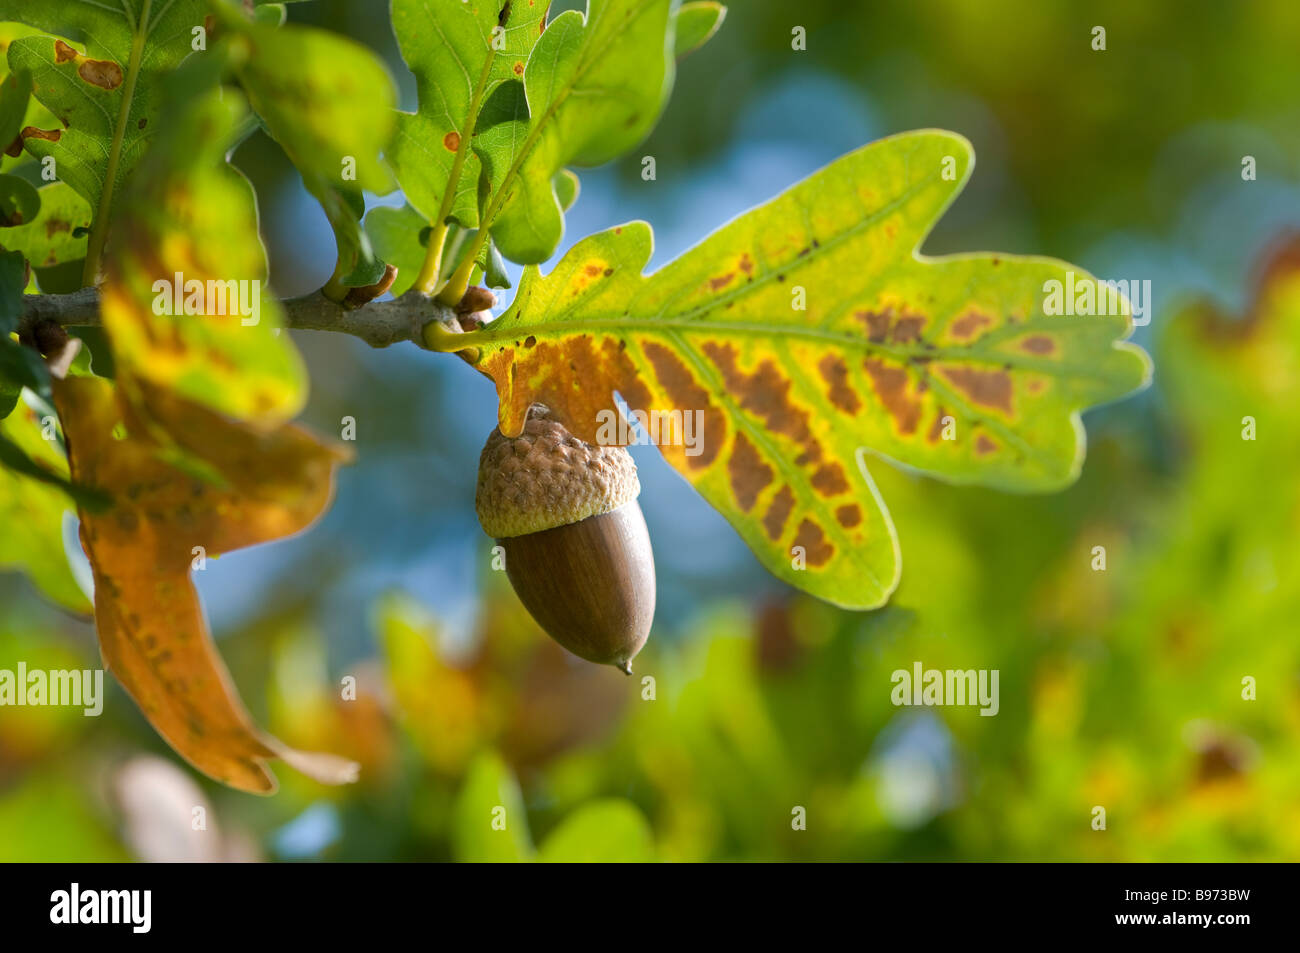 Oak Tree Autumn Stock Photos & Oak Tree Autumn Stock Images - Alamy